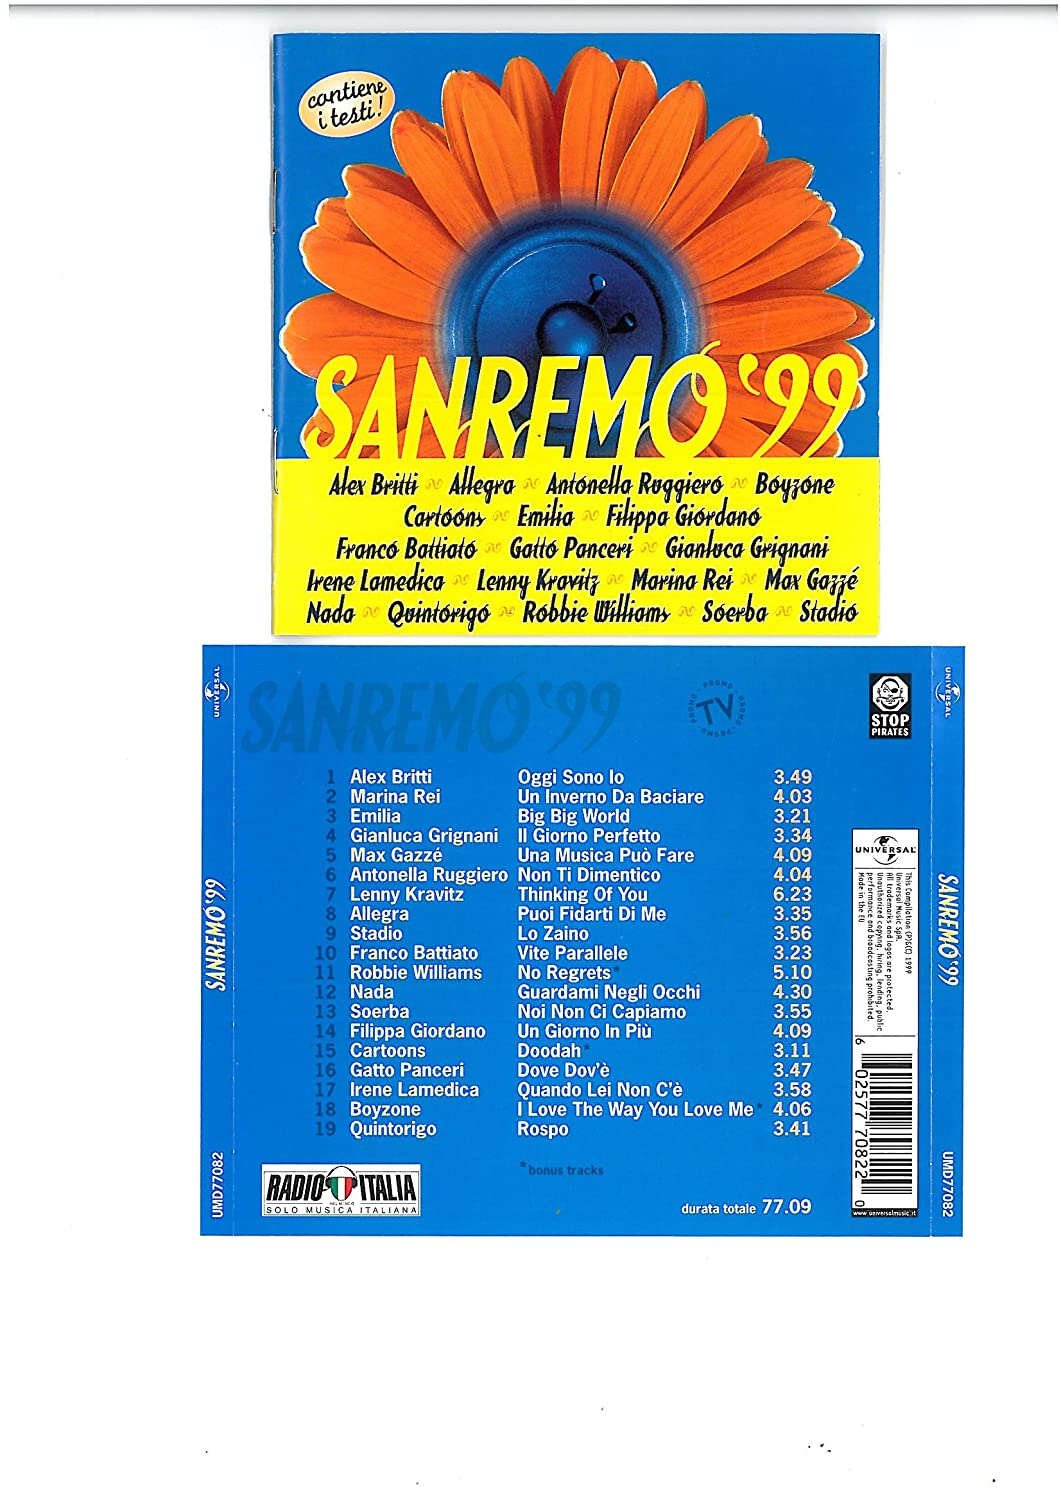 Sanremo Selling and selling Department store 99